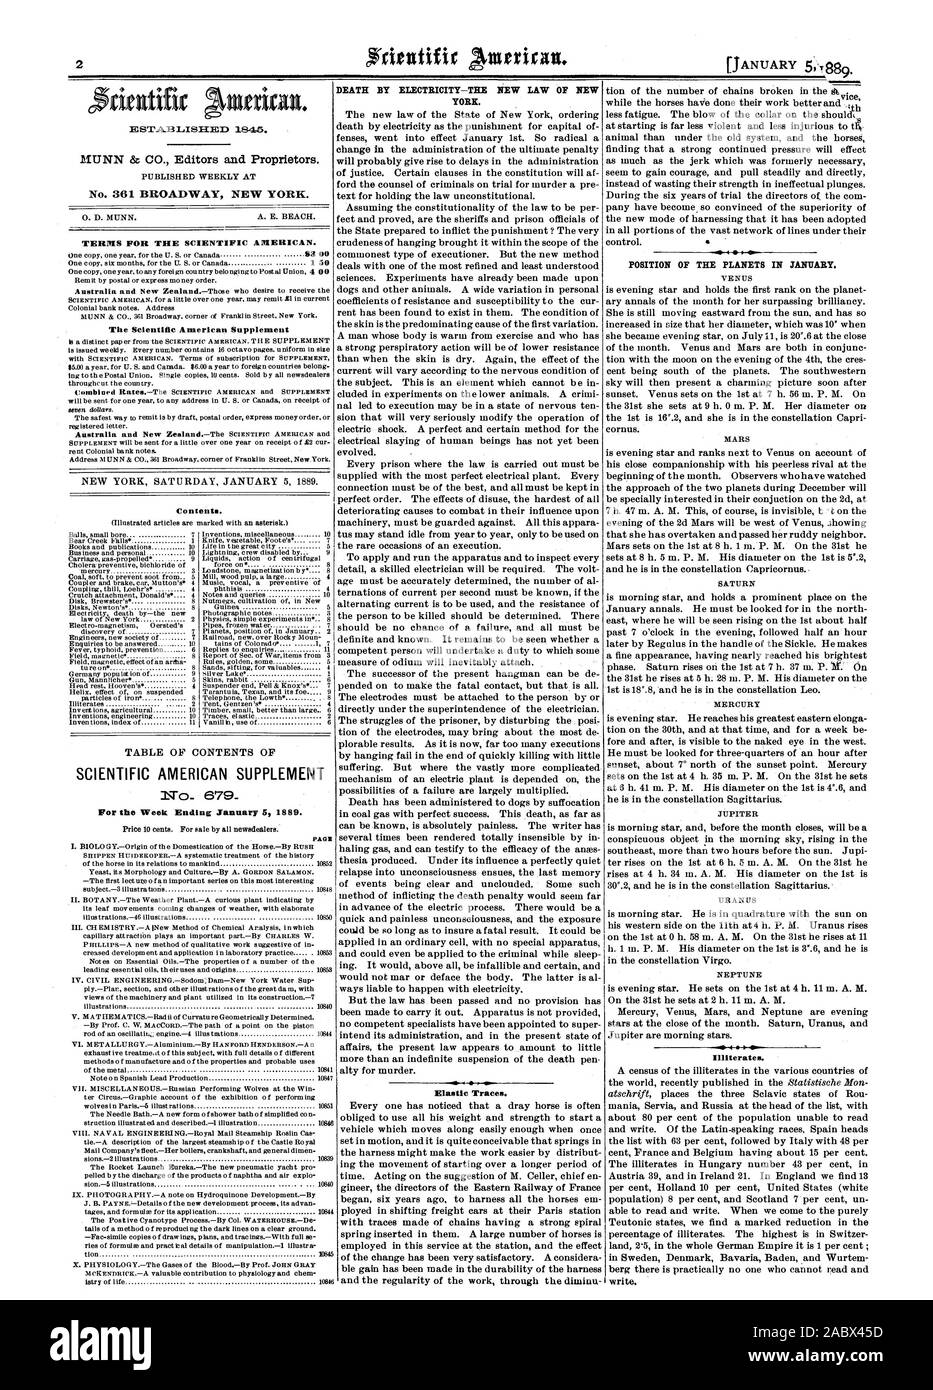 Week Ending January 5 1889. PAGE DEATH BY ELECTRICITY—THE NEW LAW OF NEW YORK. Elastic Traces. POSITION OF THE PLANETS IN JANUARY. MERCURY JUPITER NEPTUNE Illiterates., scientific american, 1889-01-05 Stock Photo